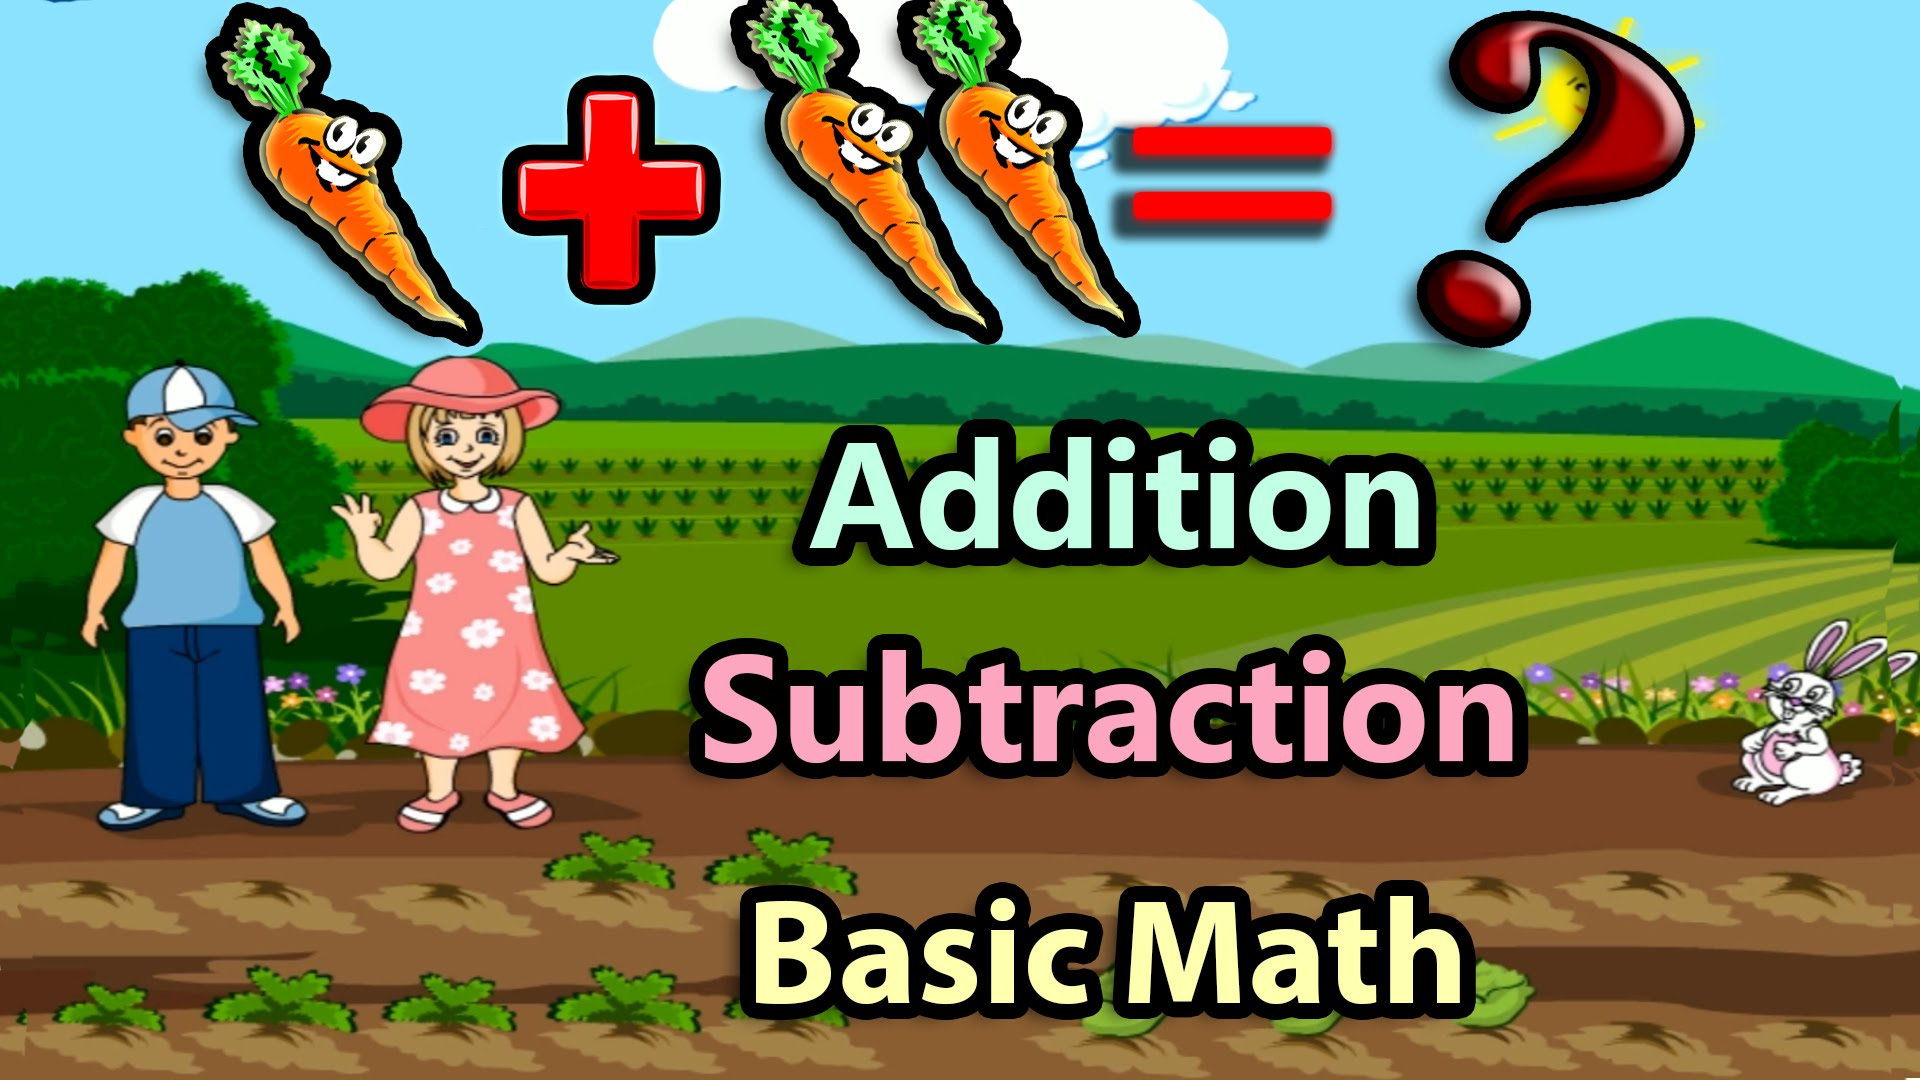 Basic Math For Kids Addition And Subtraction Science